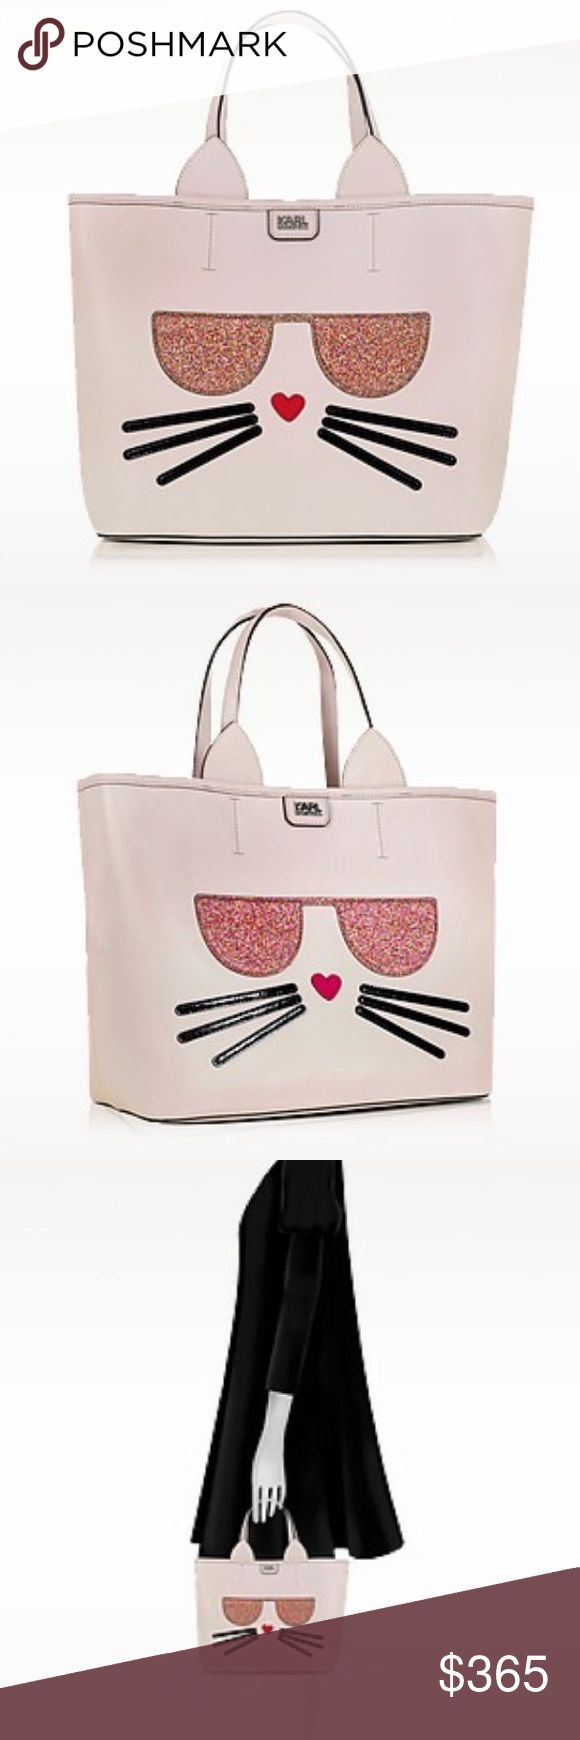 """KARL LAGERFELD K/Kocktail Choupette Shopper K/Kocktail Choupette Shopper w/Glitter crafted in vegan leather with applique detail, lets you join in on the exclusive Kapsule party with this fun take everywhere tote that has ample room for a bottle of bubbles. Featuring top zip closure, double flat handles, Choupette with glitter glasses applique, detachable inner zip pouch and silver tone hardware detail. Signature dust bag included Width12.60"""" Height11.42""""  Depth6.69""""  HandlesDouble…"""